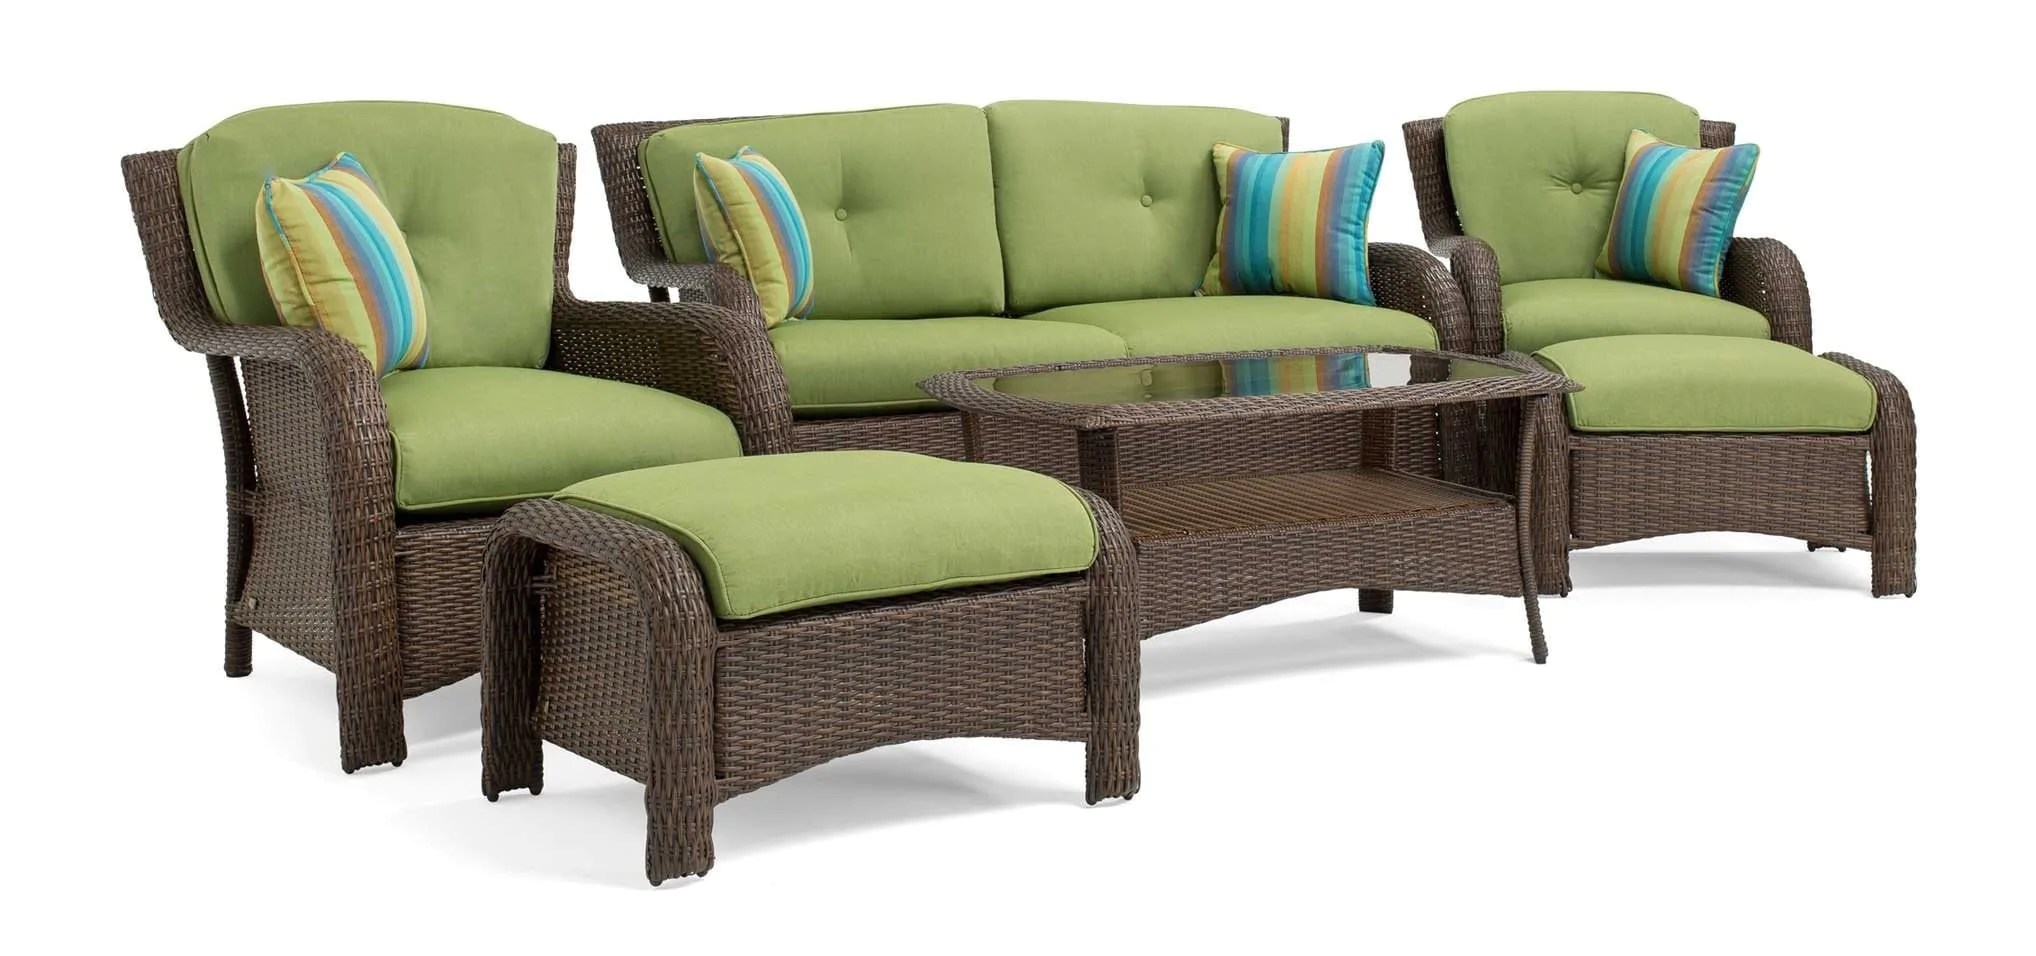 Sawyer 6pc Resin Wicker Patio Furniture Conversation Set  Green     Sawyer 6 Piece Resin Wicker Patio Furniture Conversation Set  Cilantro  Green